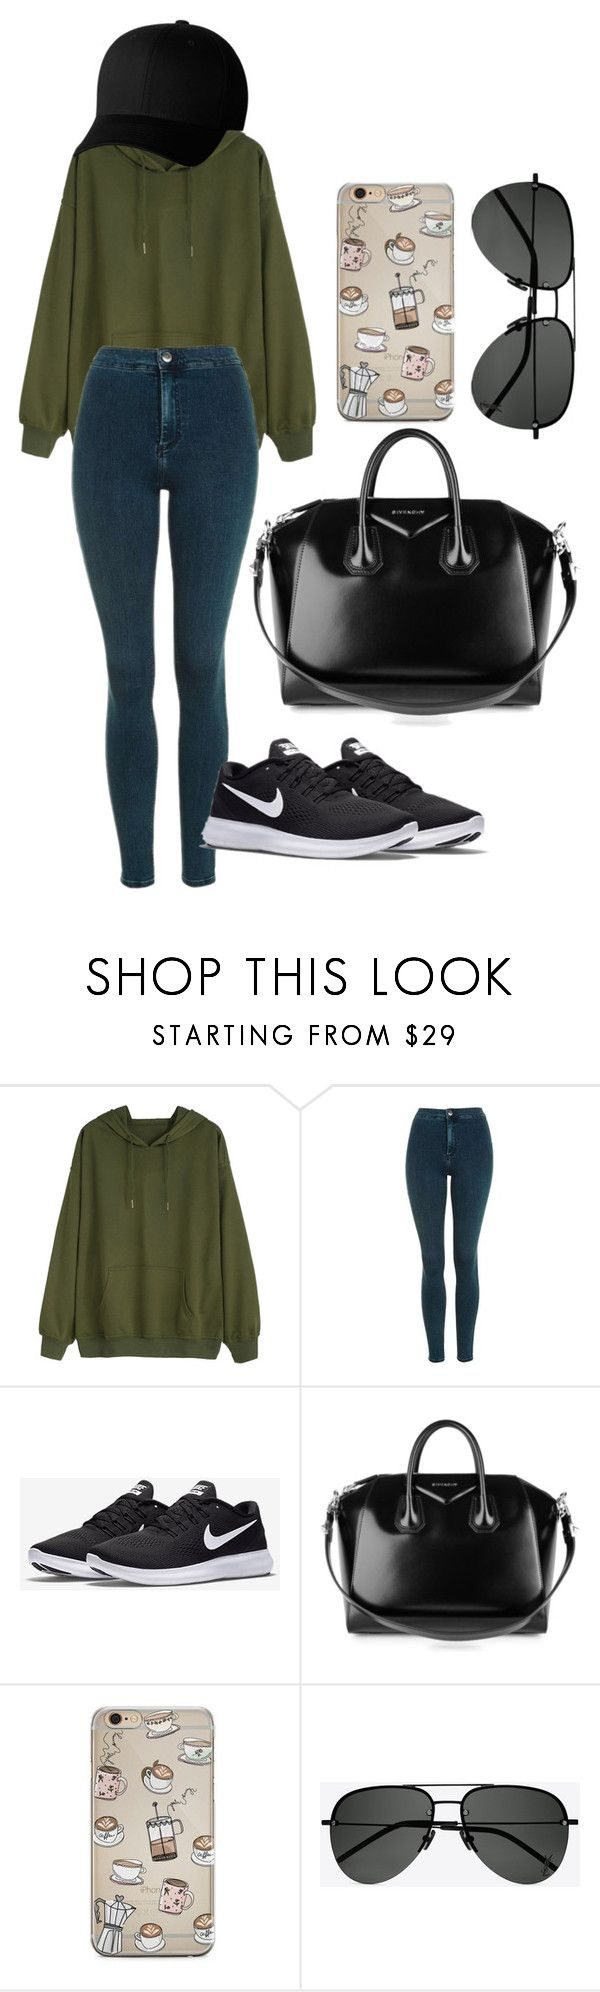 """sporty"" by wiktoria-duszynska ❤ liked on Polyvore featuring Topshop, NIKE, Givenchy, Yves Saint Laurent and Flexfit"